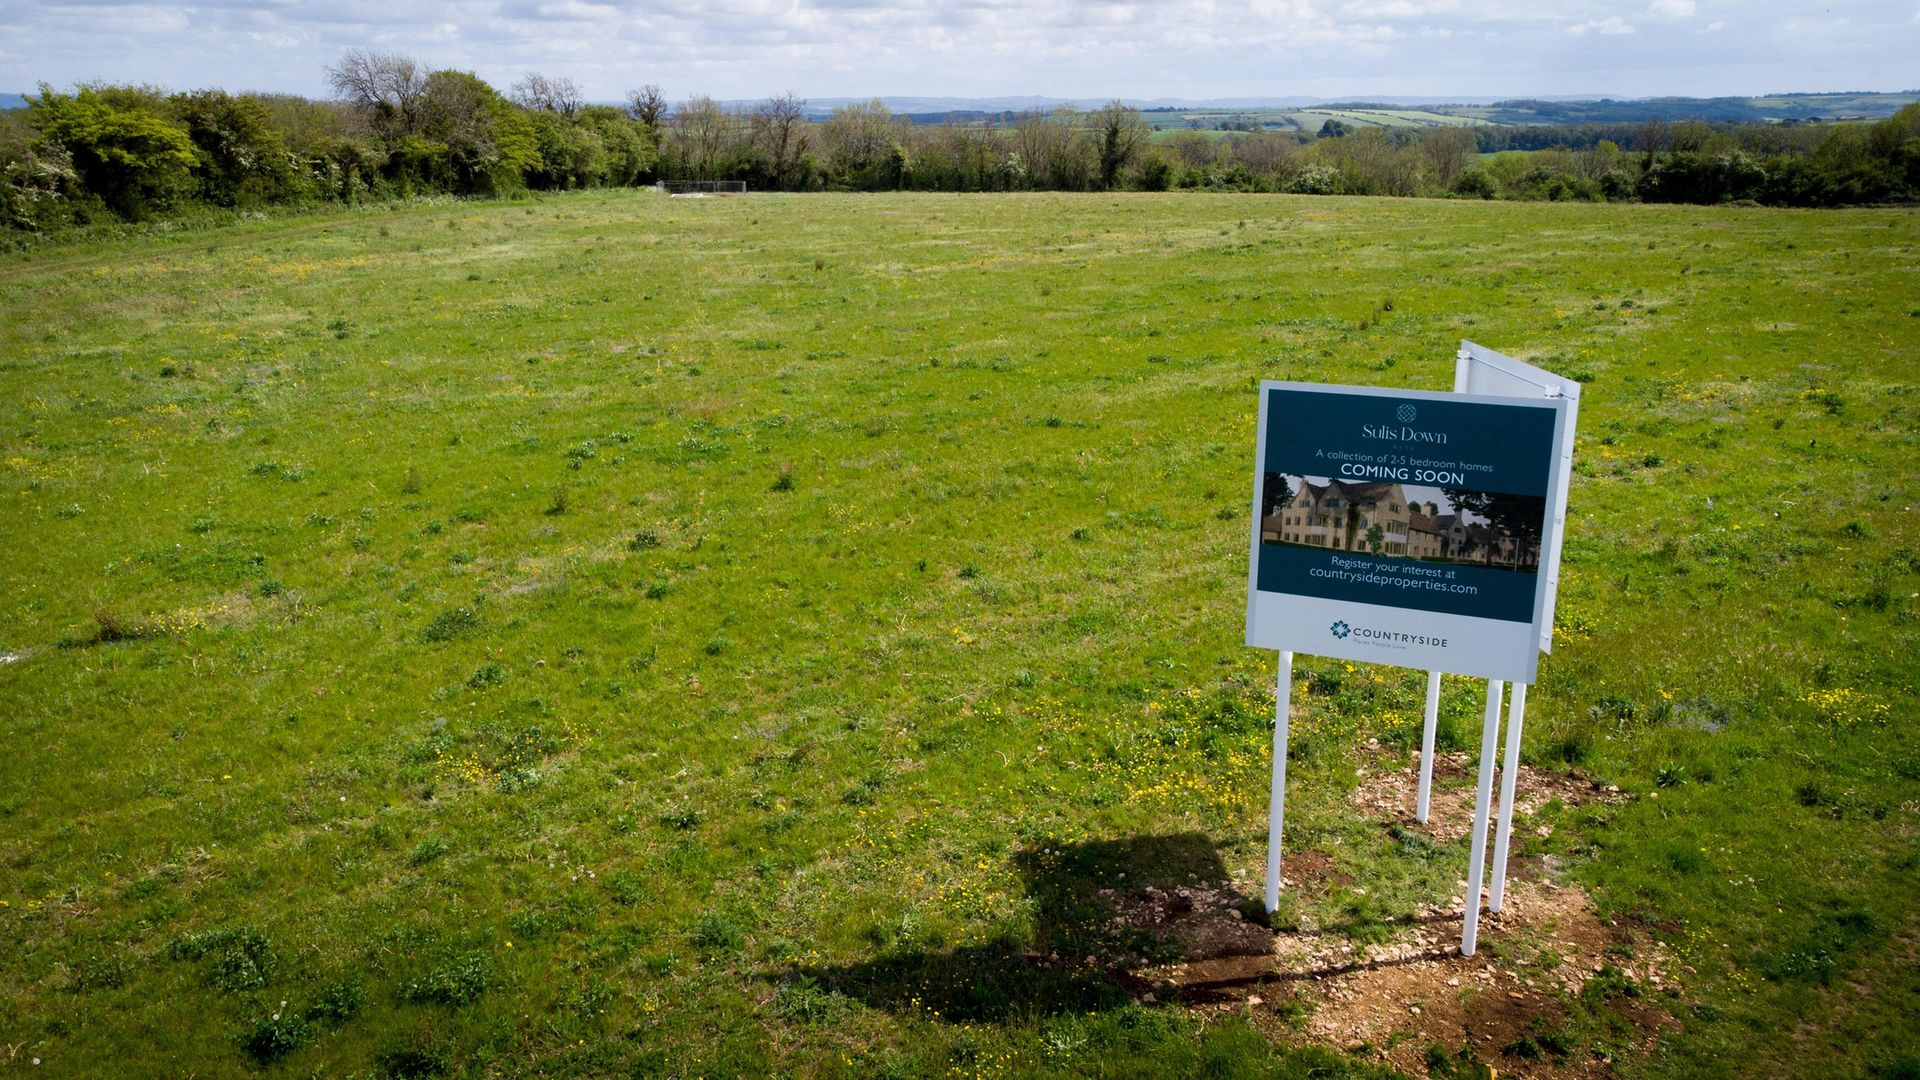 SIGN OF THINGS TO COME: A property developer's board advertises new houses that are planned to be built on green belt land on the edge of Bath - Credit: Matt Cardy